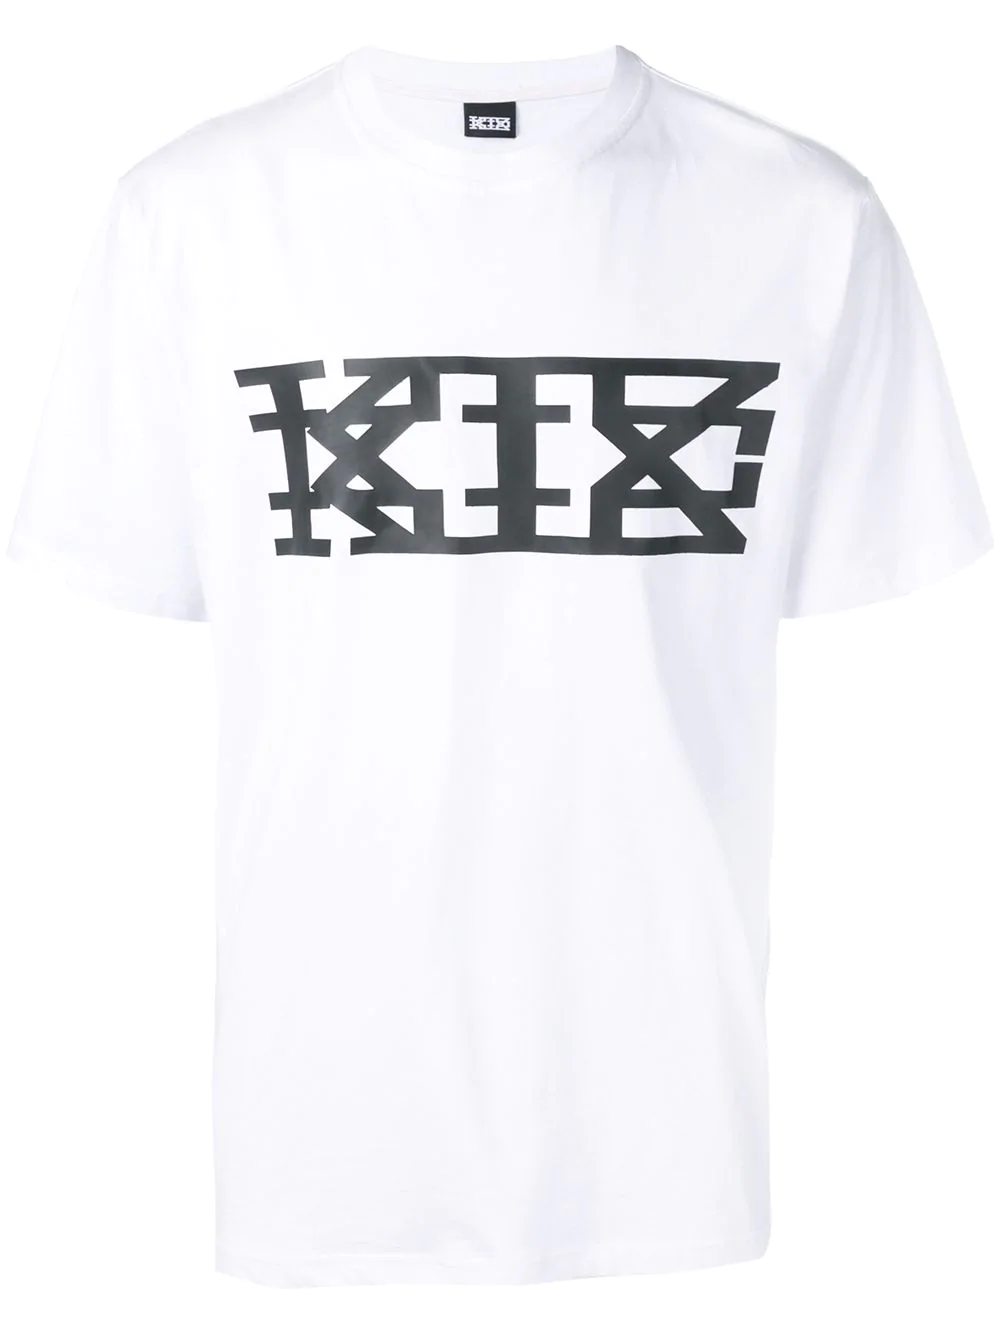 Ktz Logo Printed T-Shirt - White